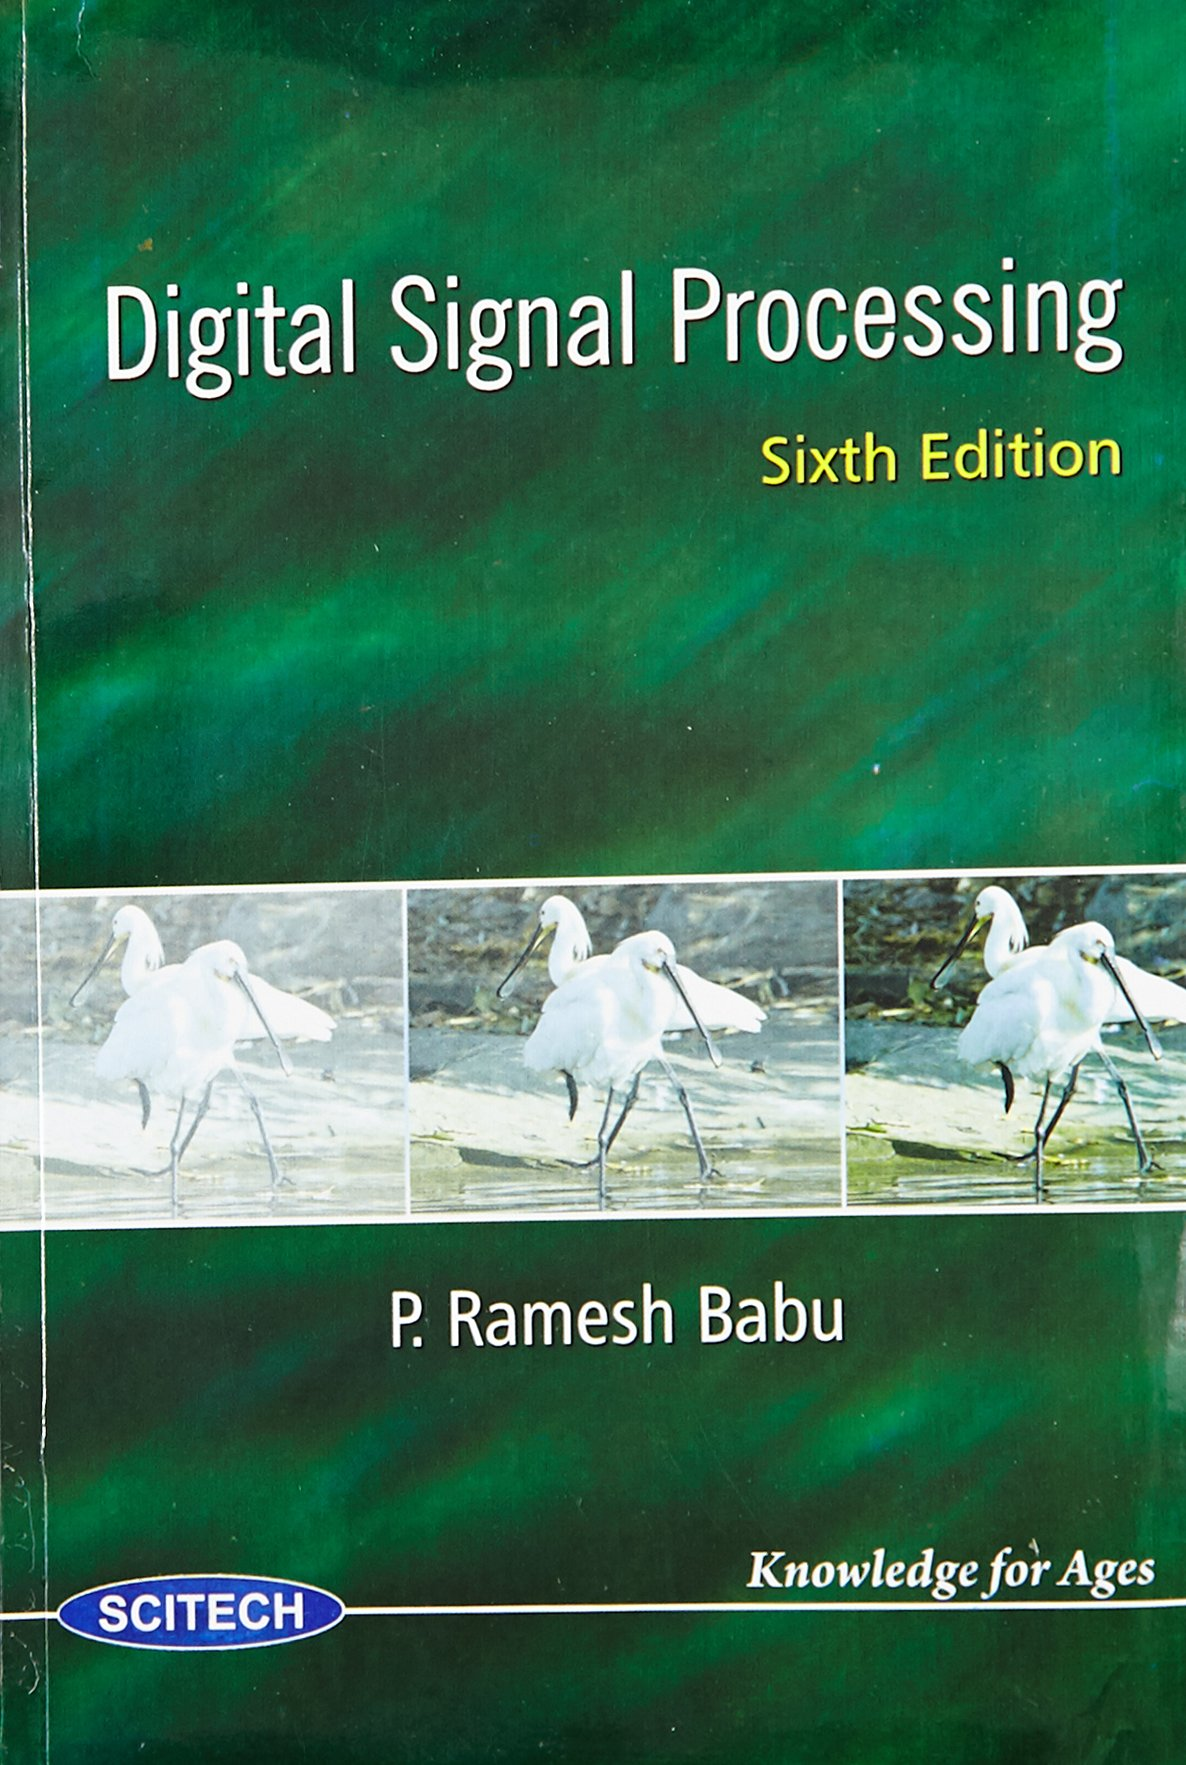 Digital Signal Processing Book By Nagoor Kani